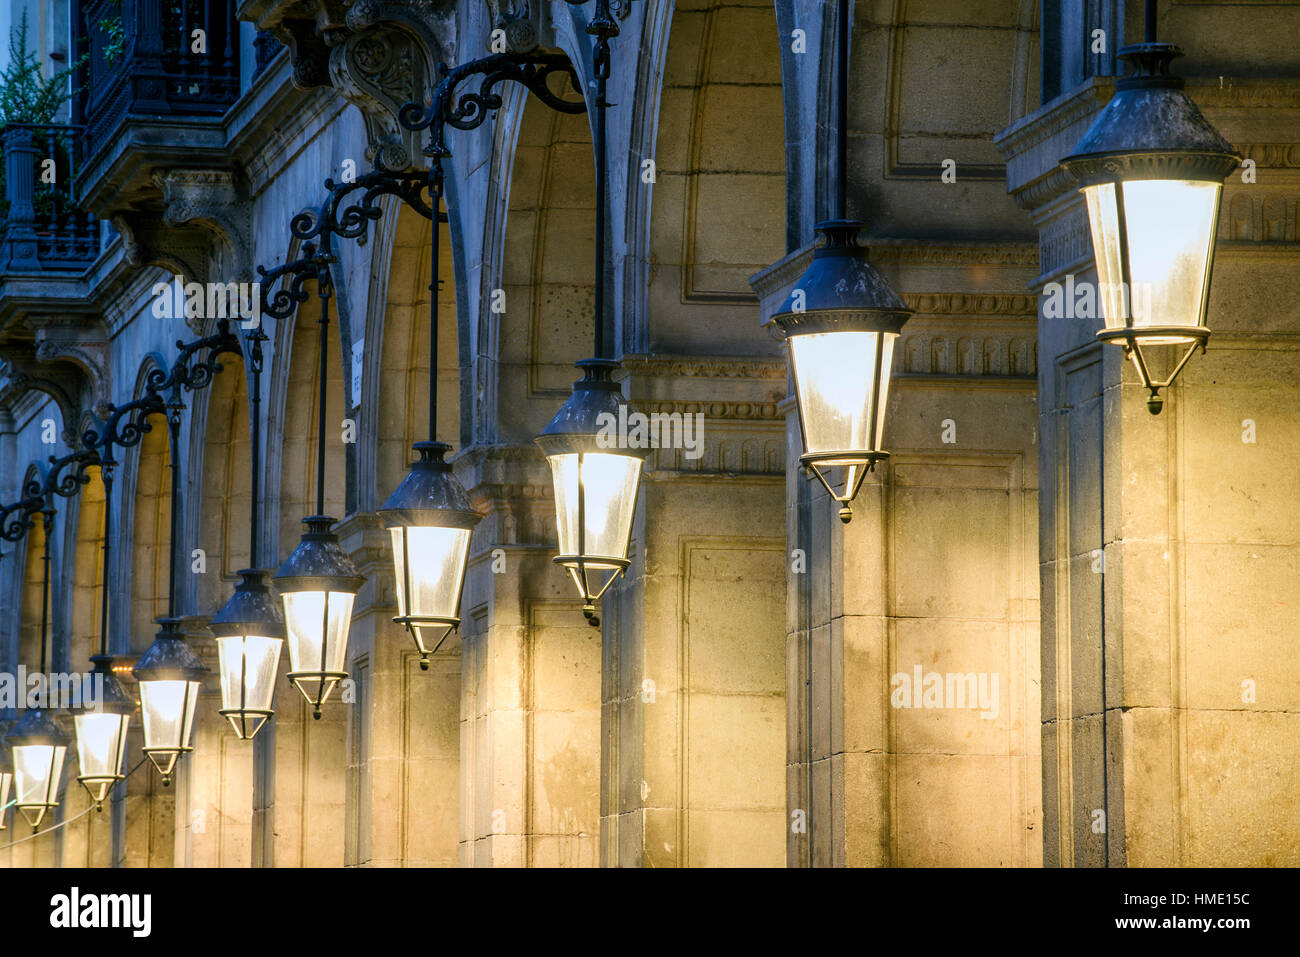 Plaza Real or Placa Reial by night, Barcelona, Catalonia, Spain - Stock Image